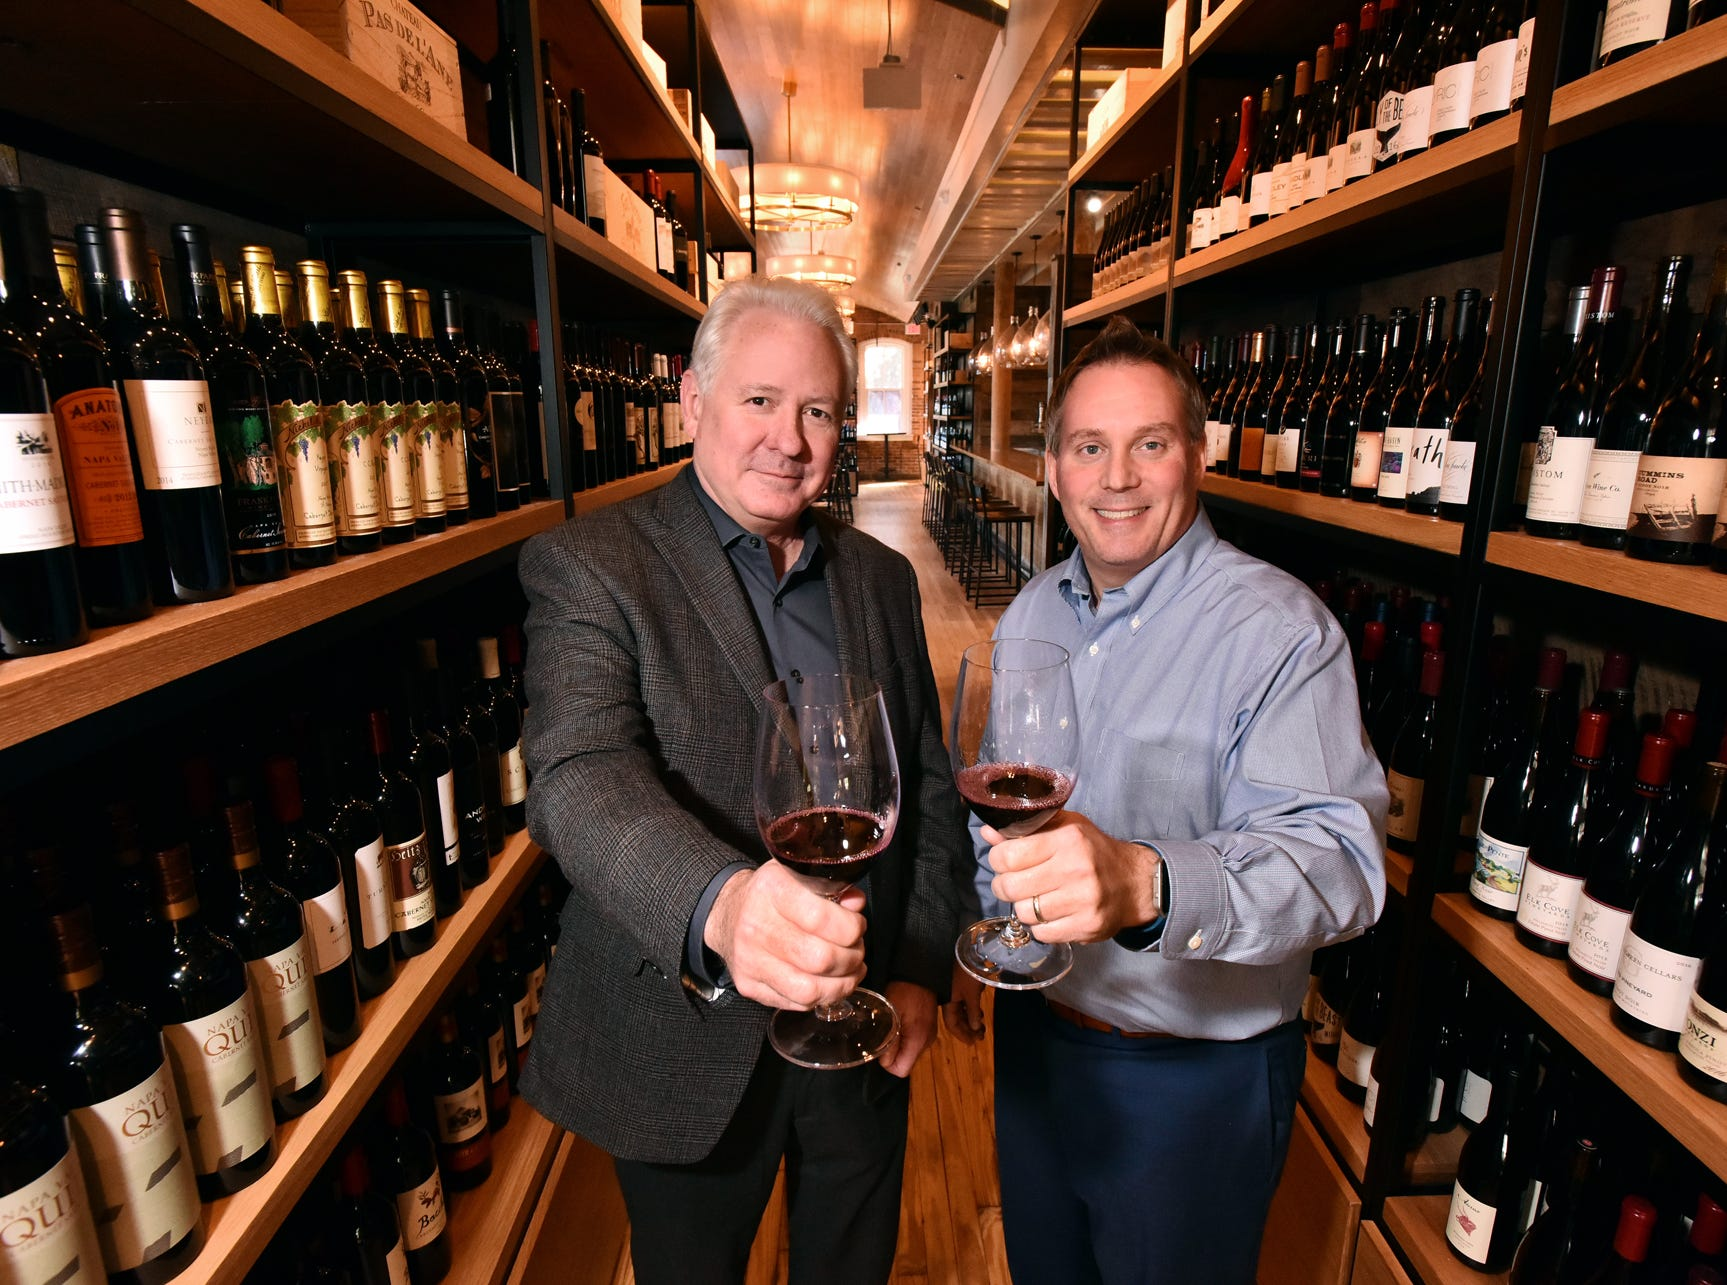 Foxcroft Wine Co. owner Conrad Hunter and manager Eric Heidal have opened a location on S. Main Street in Greenville.